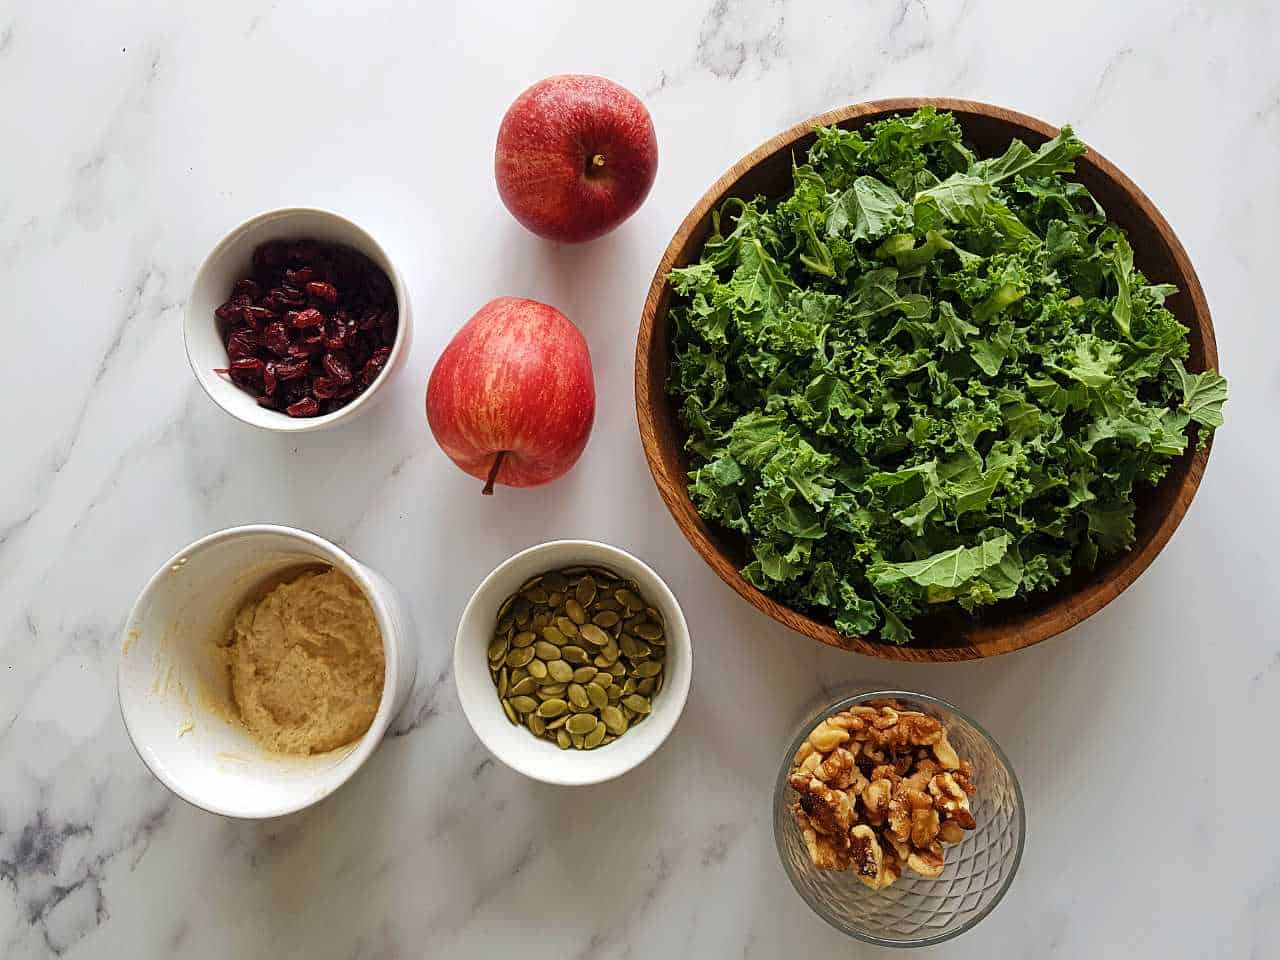 All ingredients for kale salad with apples laid out in small bowls on a marble table.